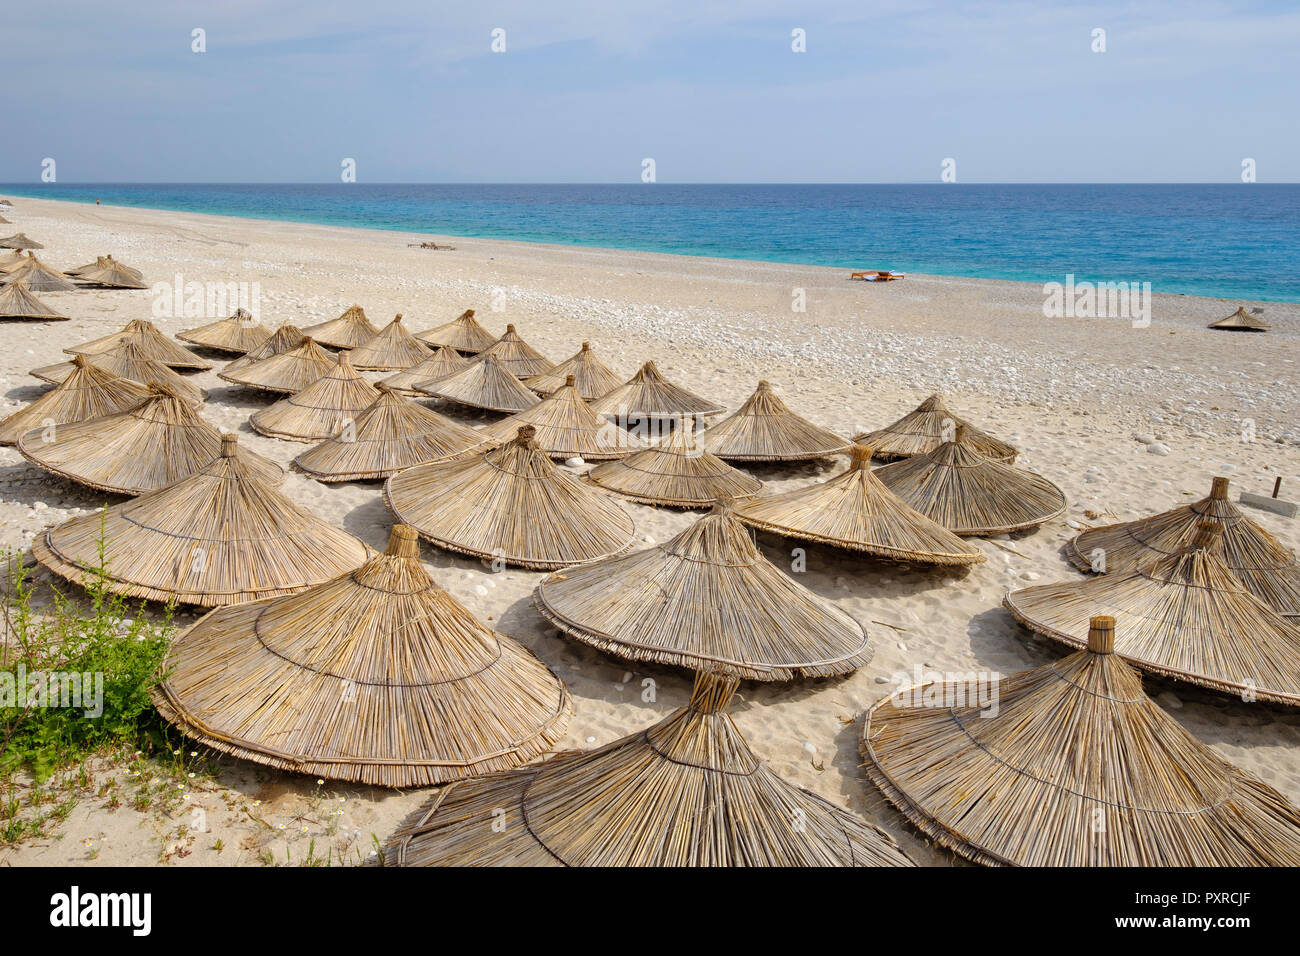 Albania, Ionean sea, Albanian Riviera, sunshades on the beach of Dhermi - Stock Image